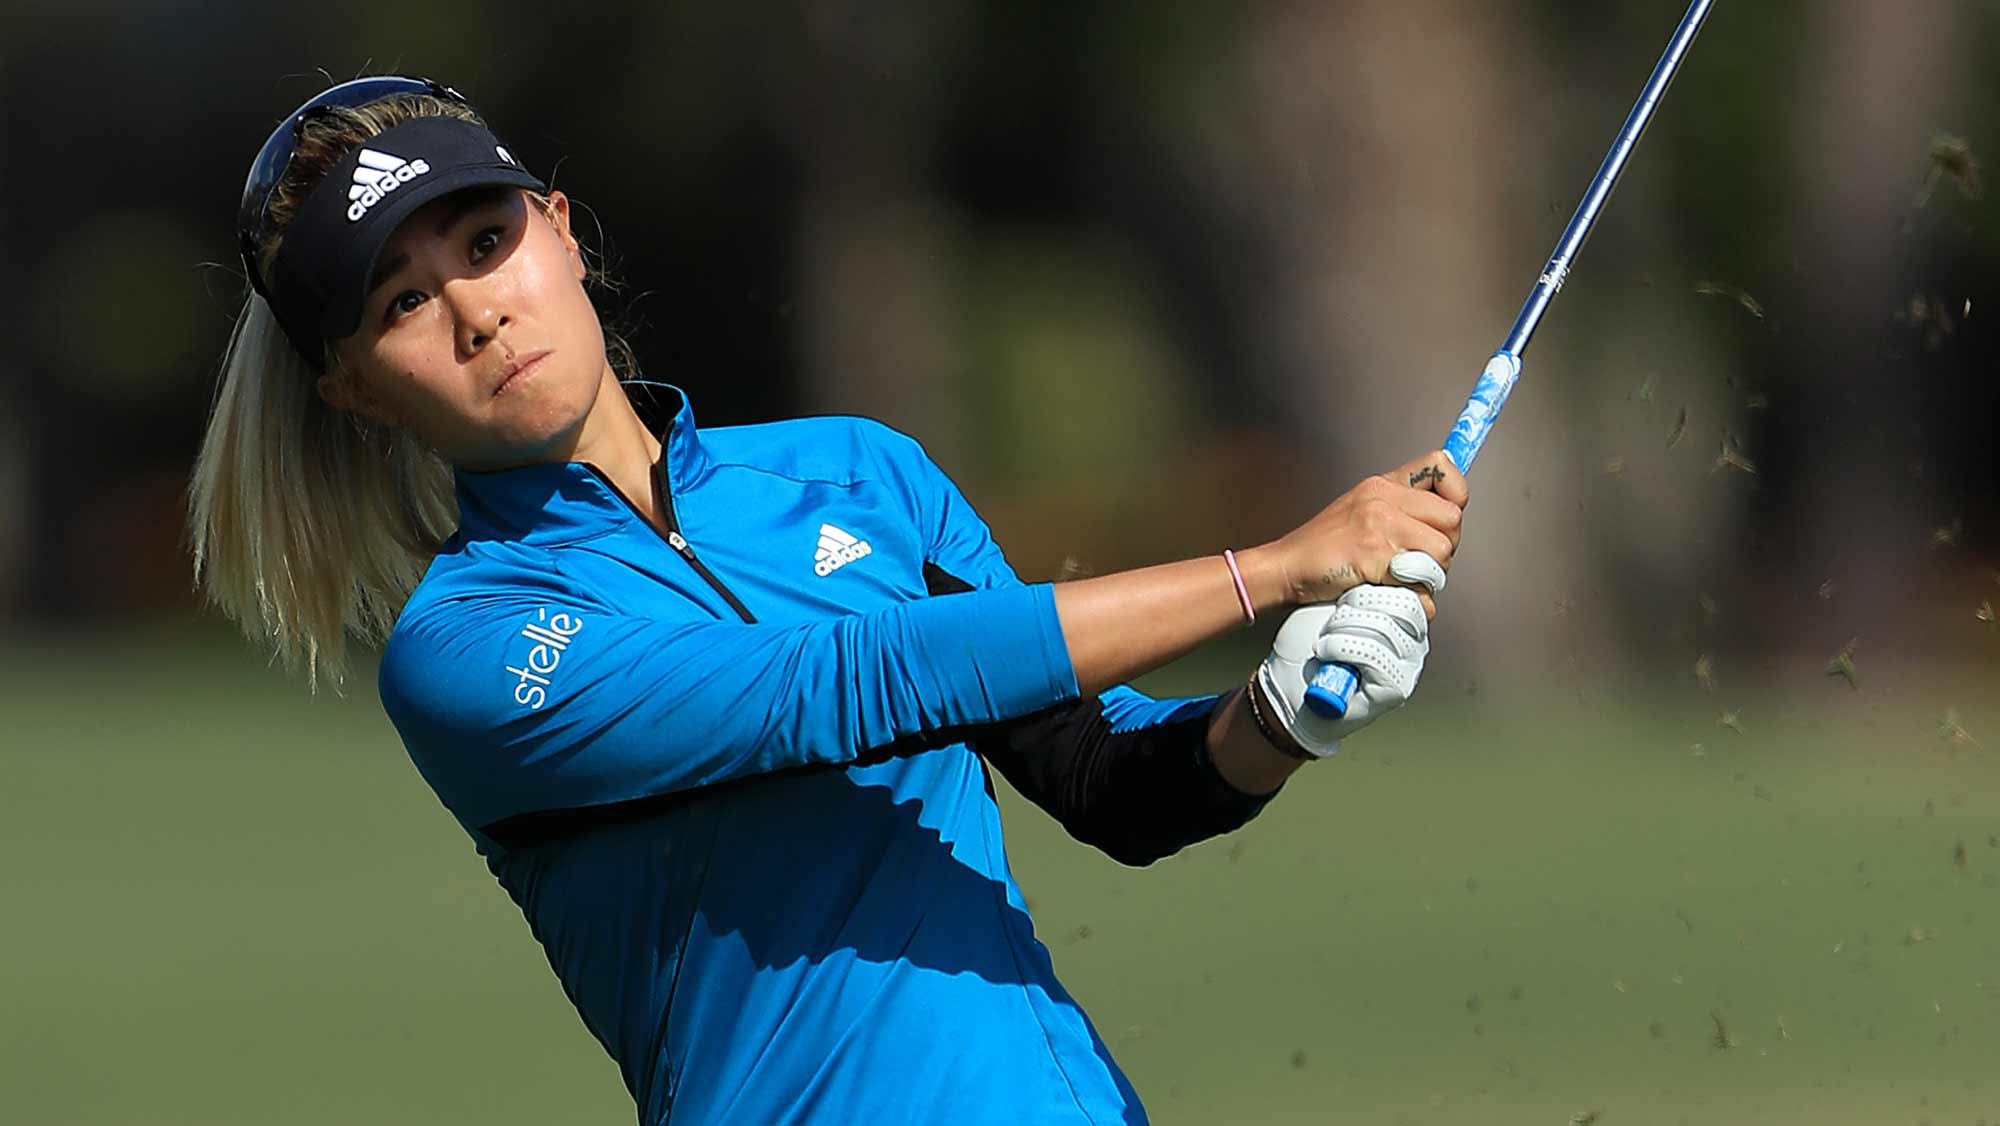 Danielle Kang of the United States plays a shot on the sixth hole during the final round of the CME Group Tour Championship at Tiburon Golf Club on November 24, 2019 in Naples, Florida